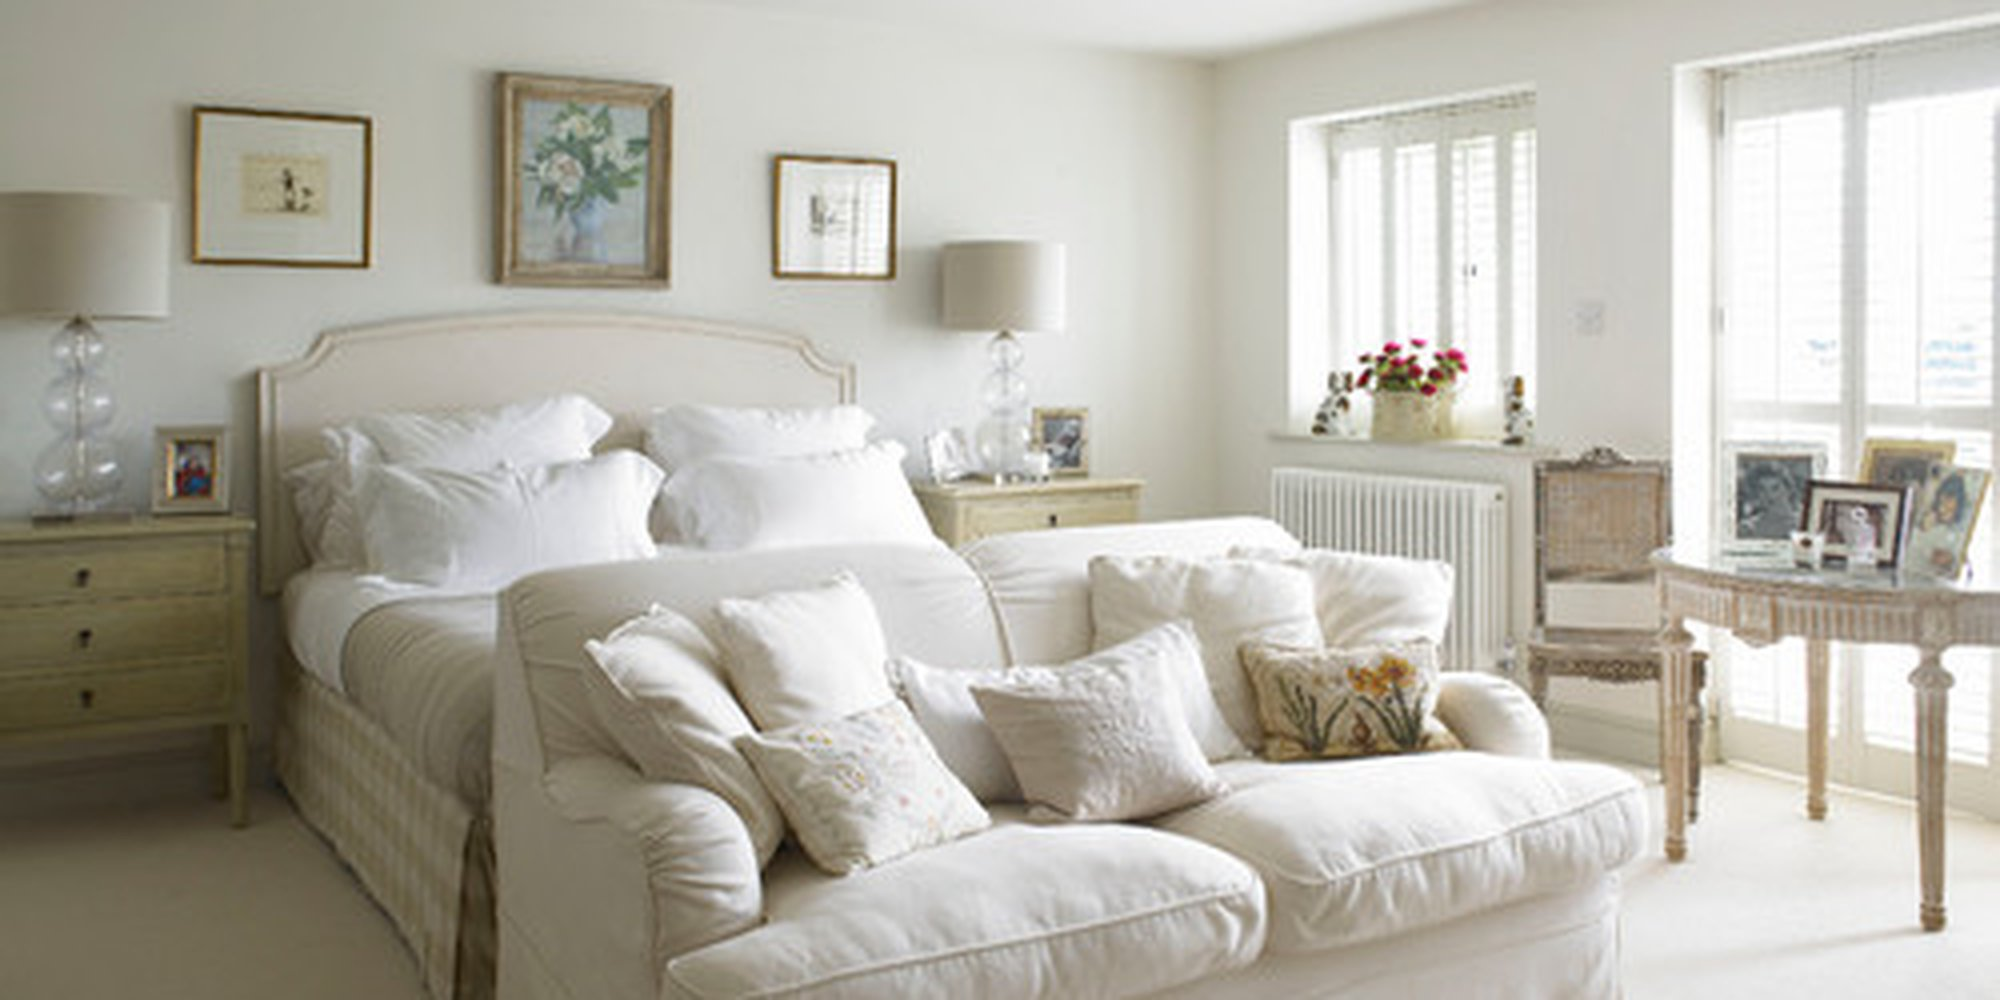 5 Style Shortcuts to get the Shabby Chic Look